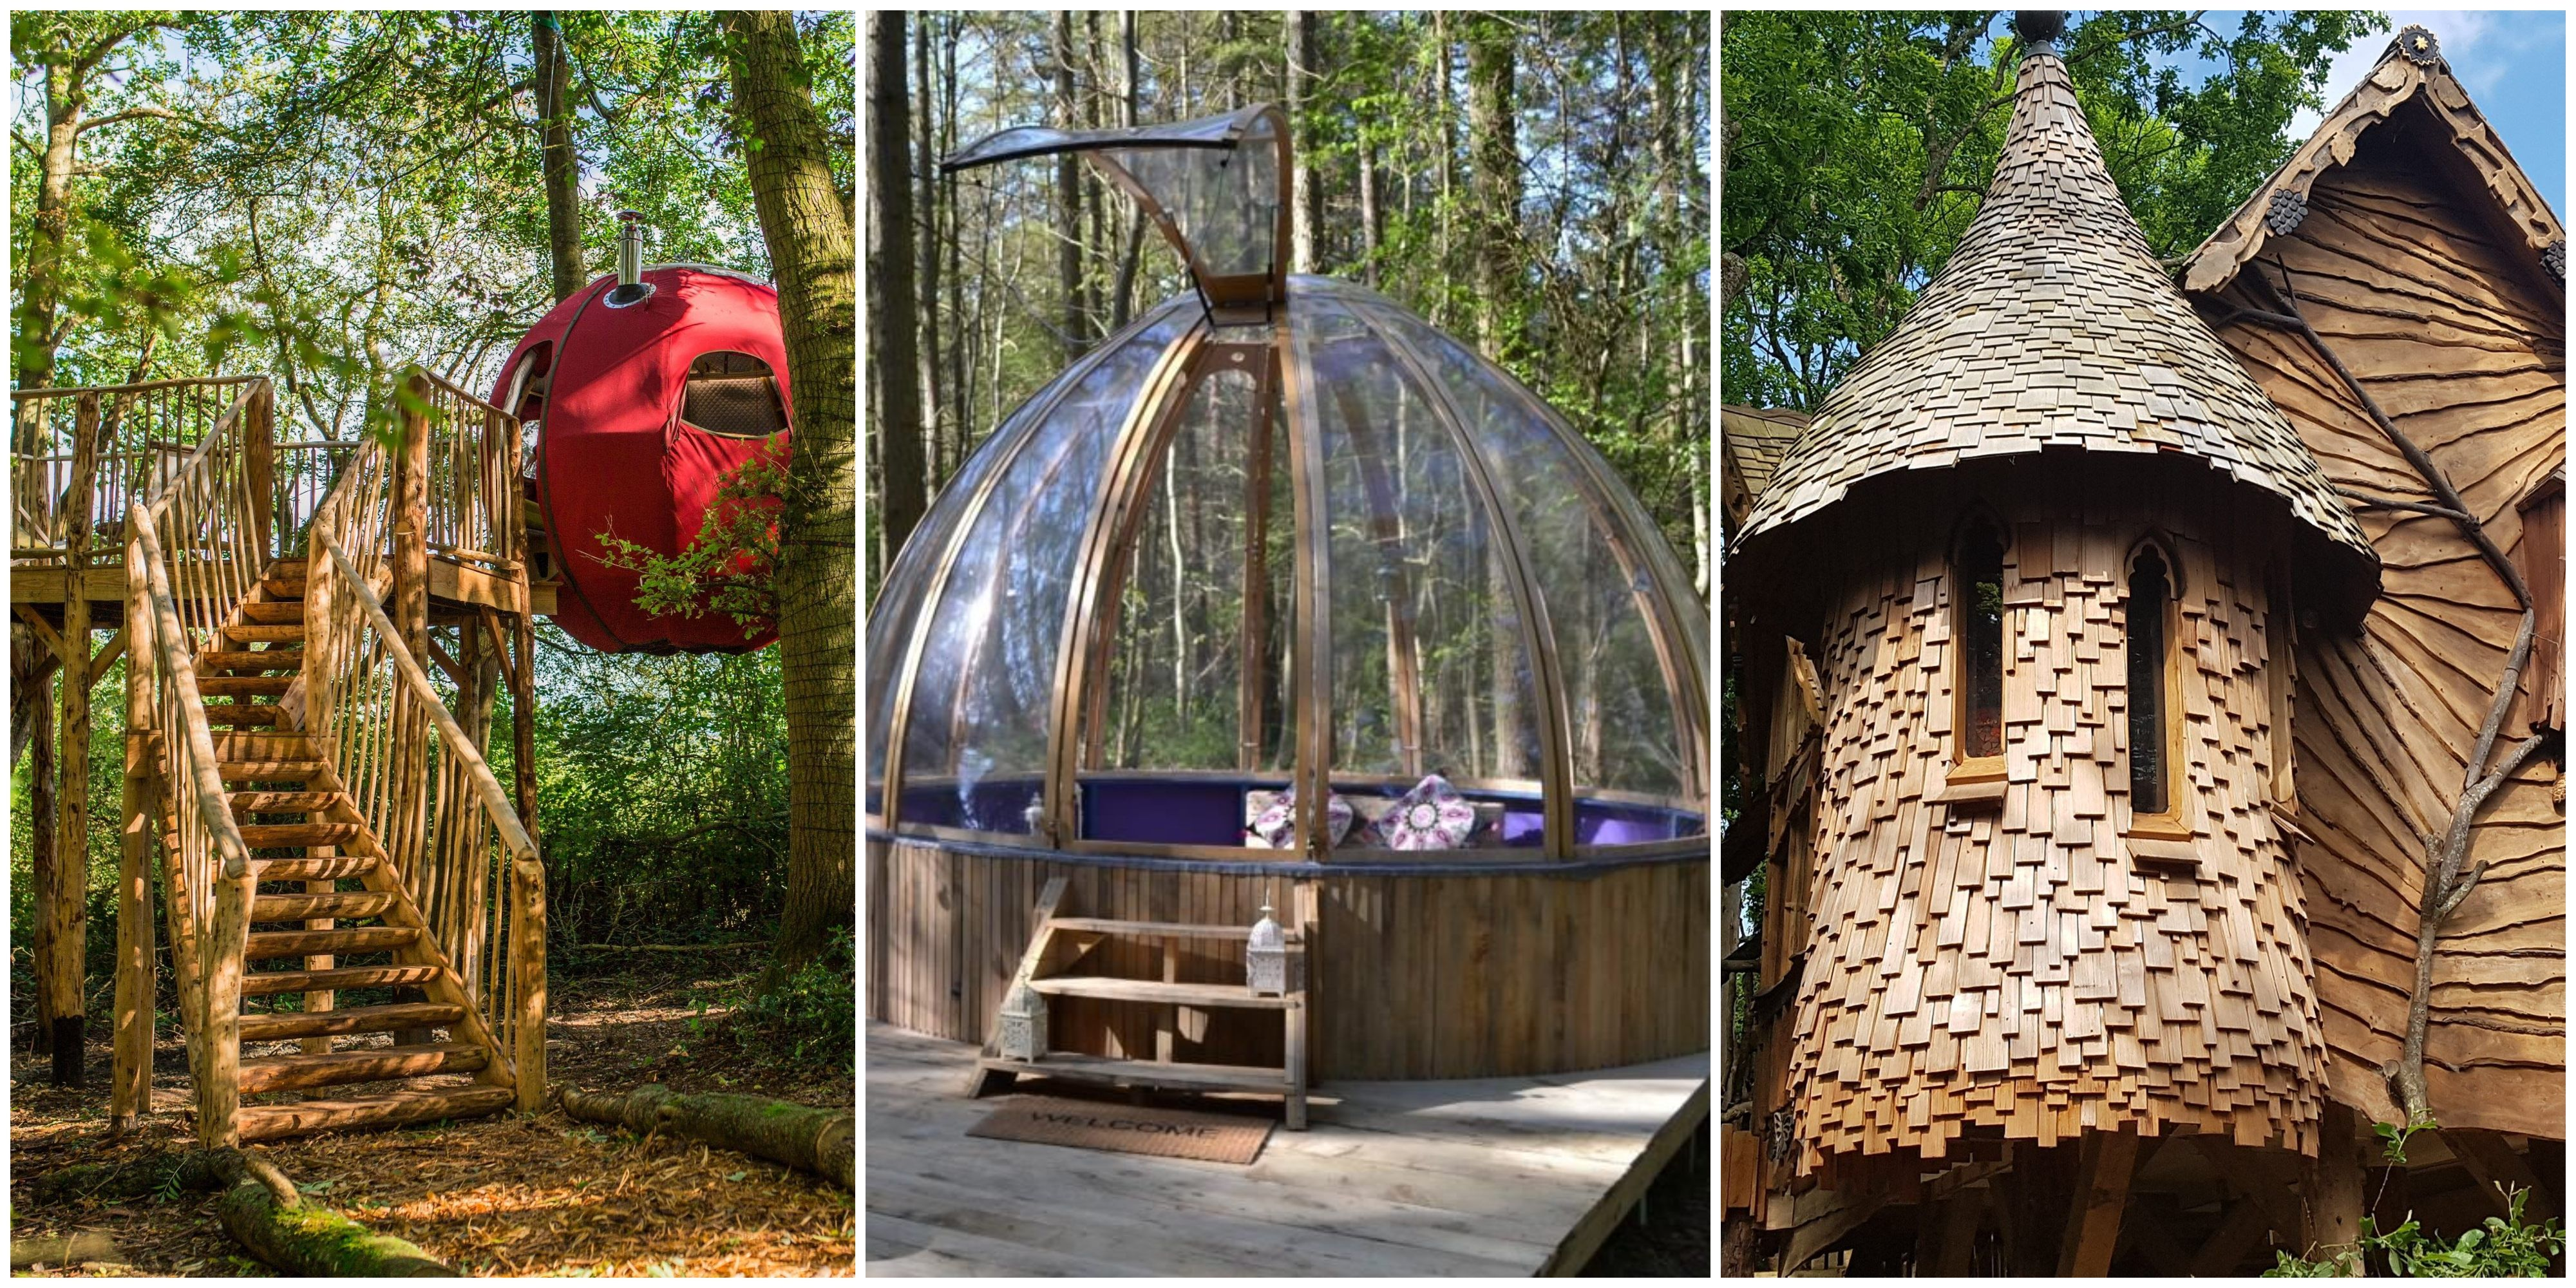 These are 10 of the best glamping sites in the UK